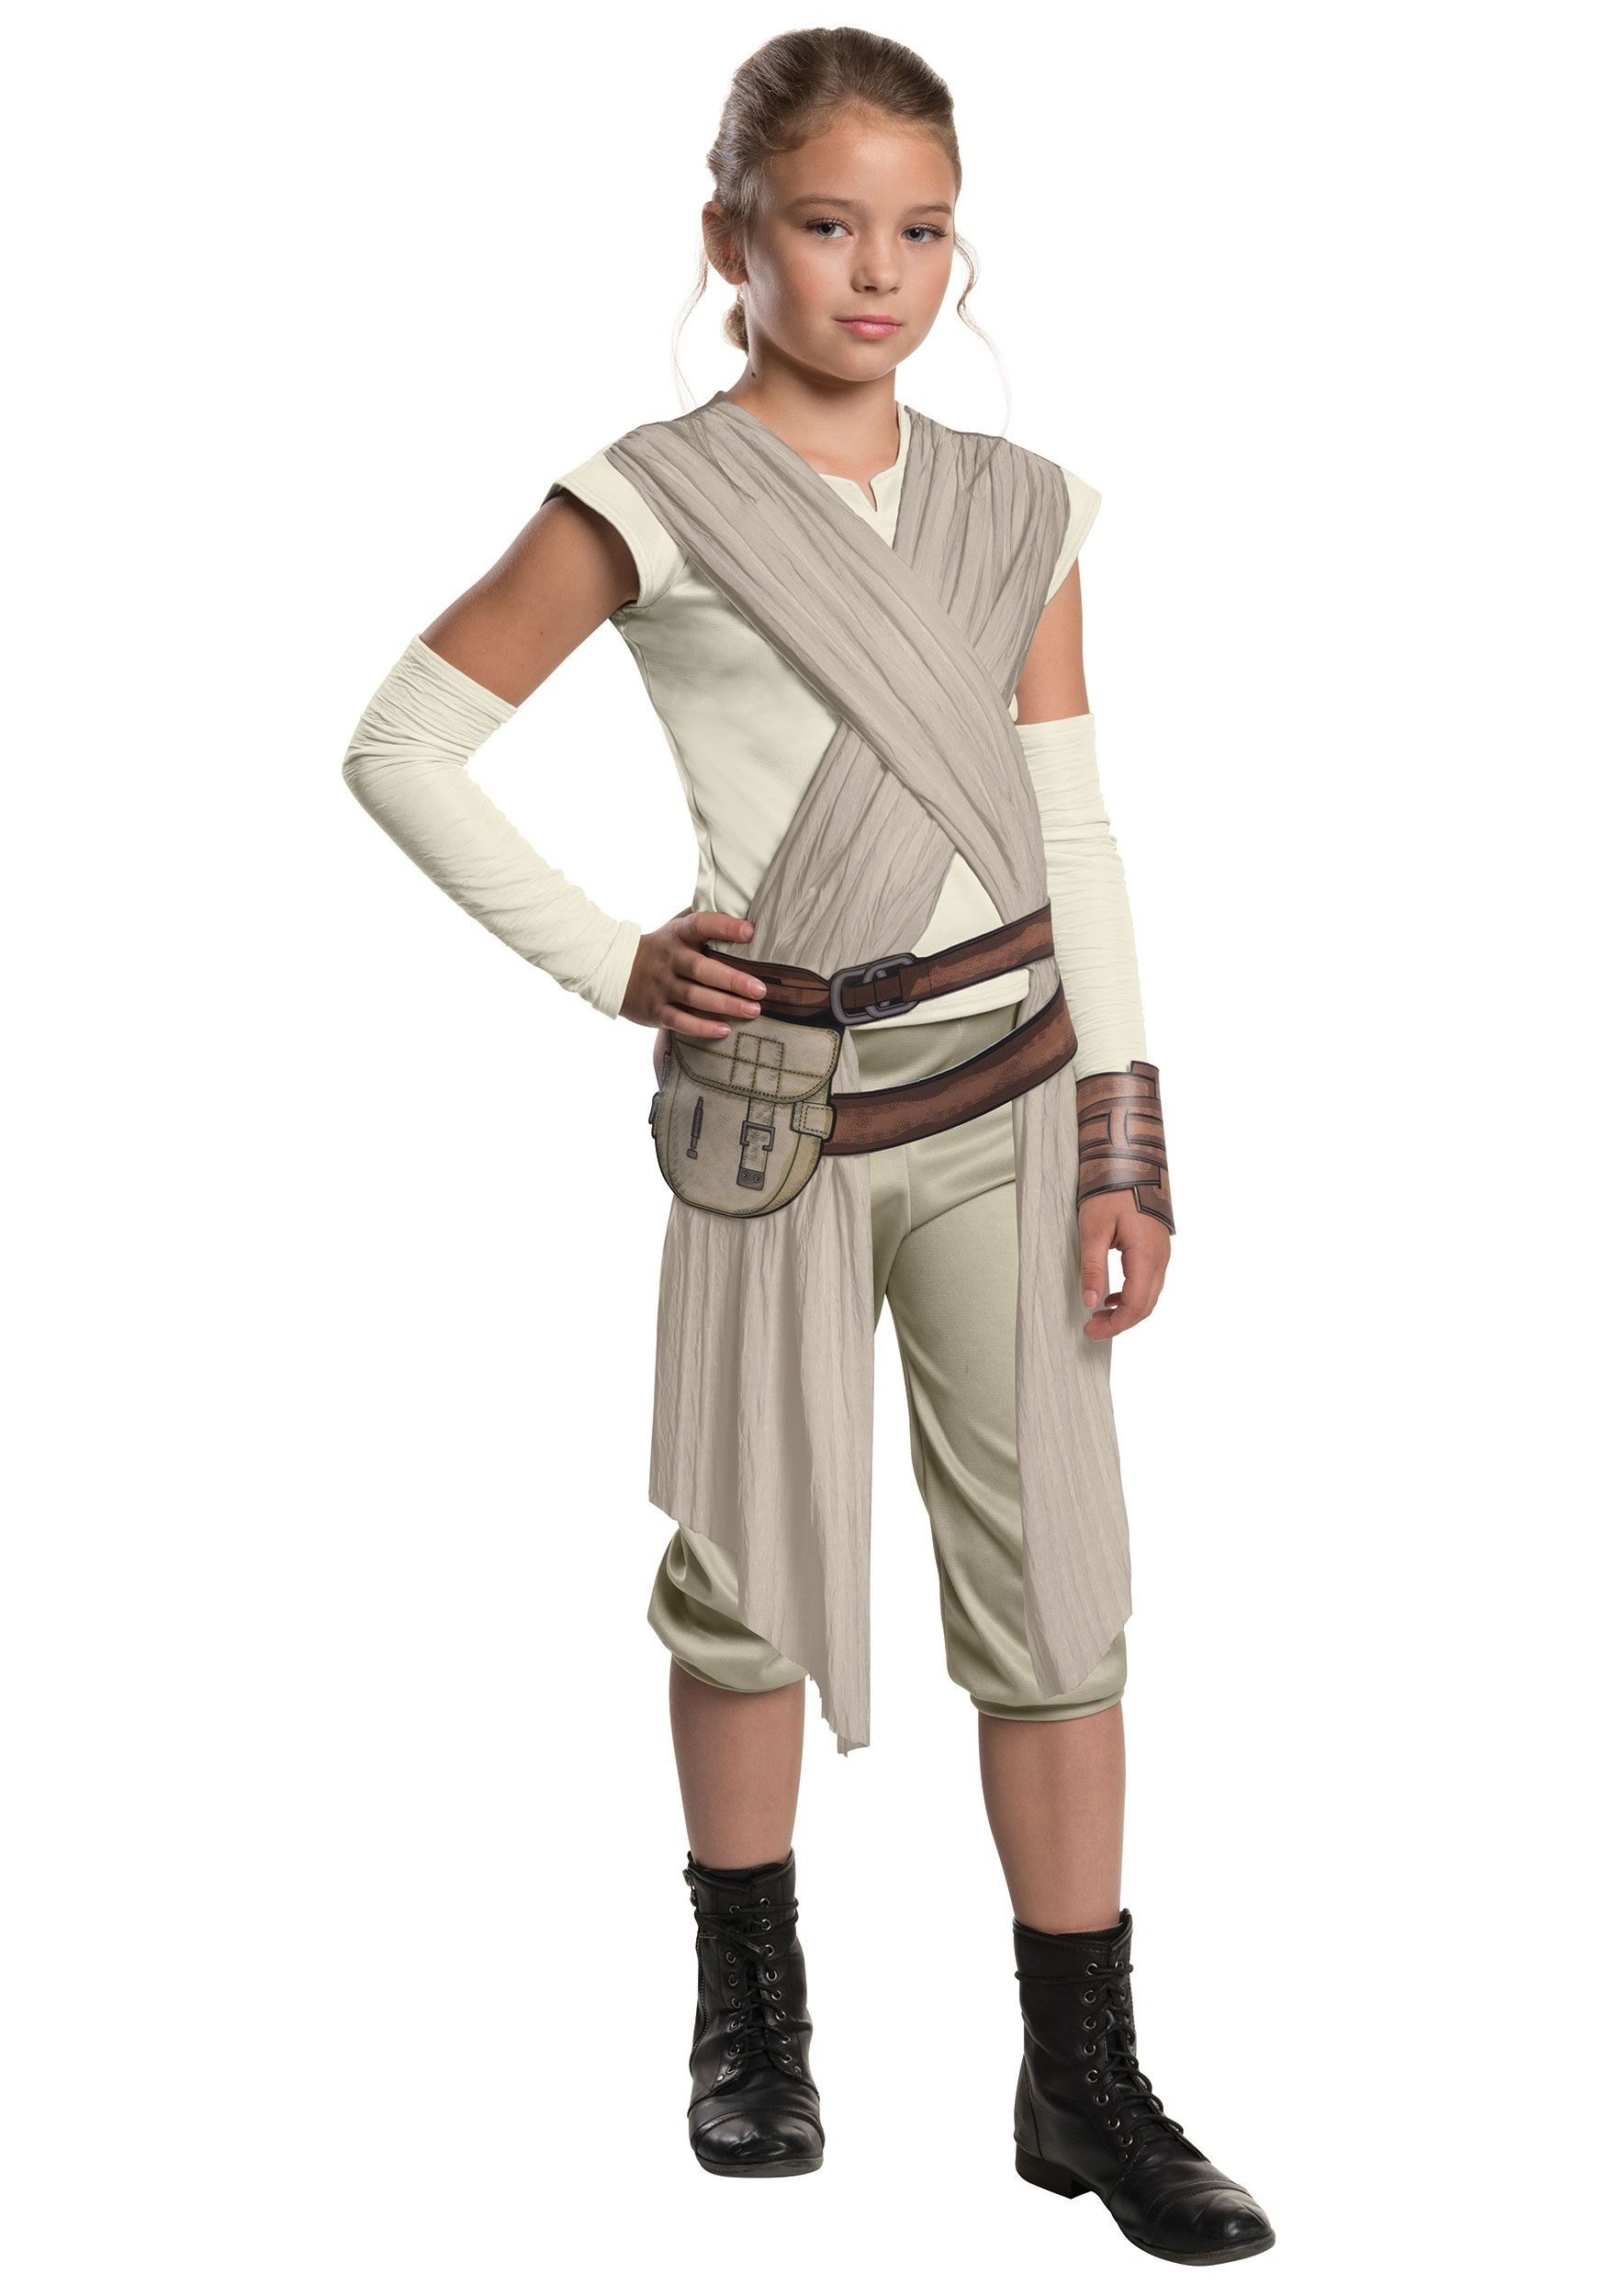 This Child Deluxe Star Wars Ep. 7 Rey Costume is licensed from The ...